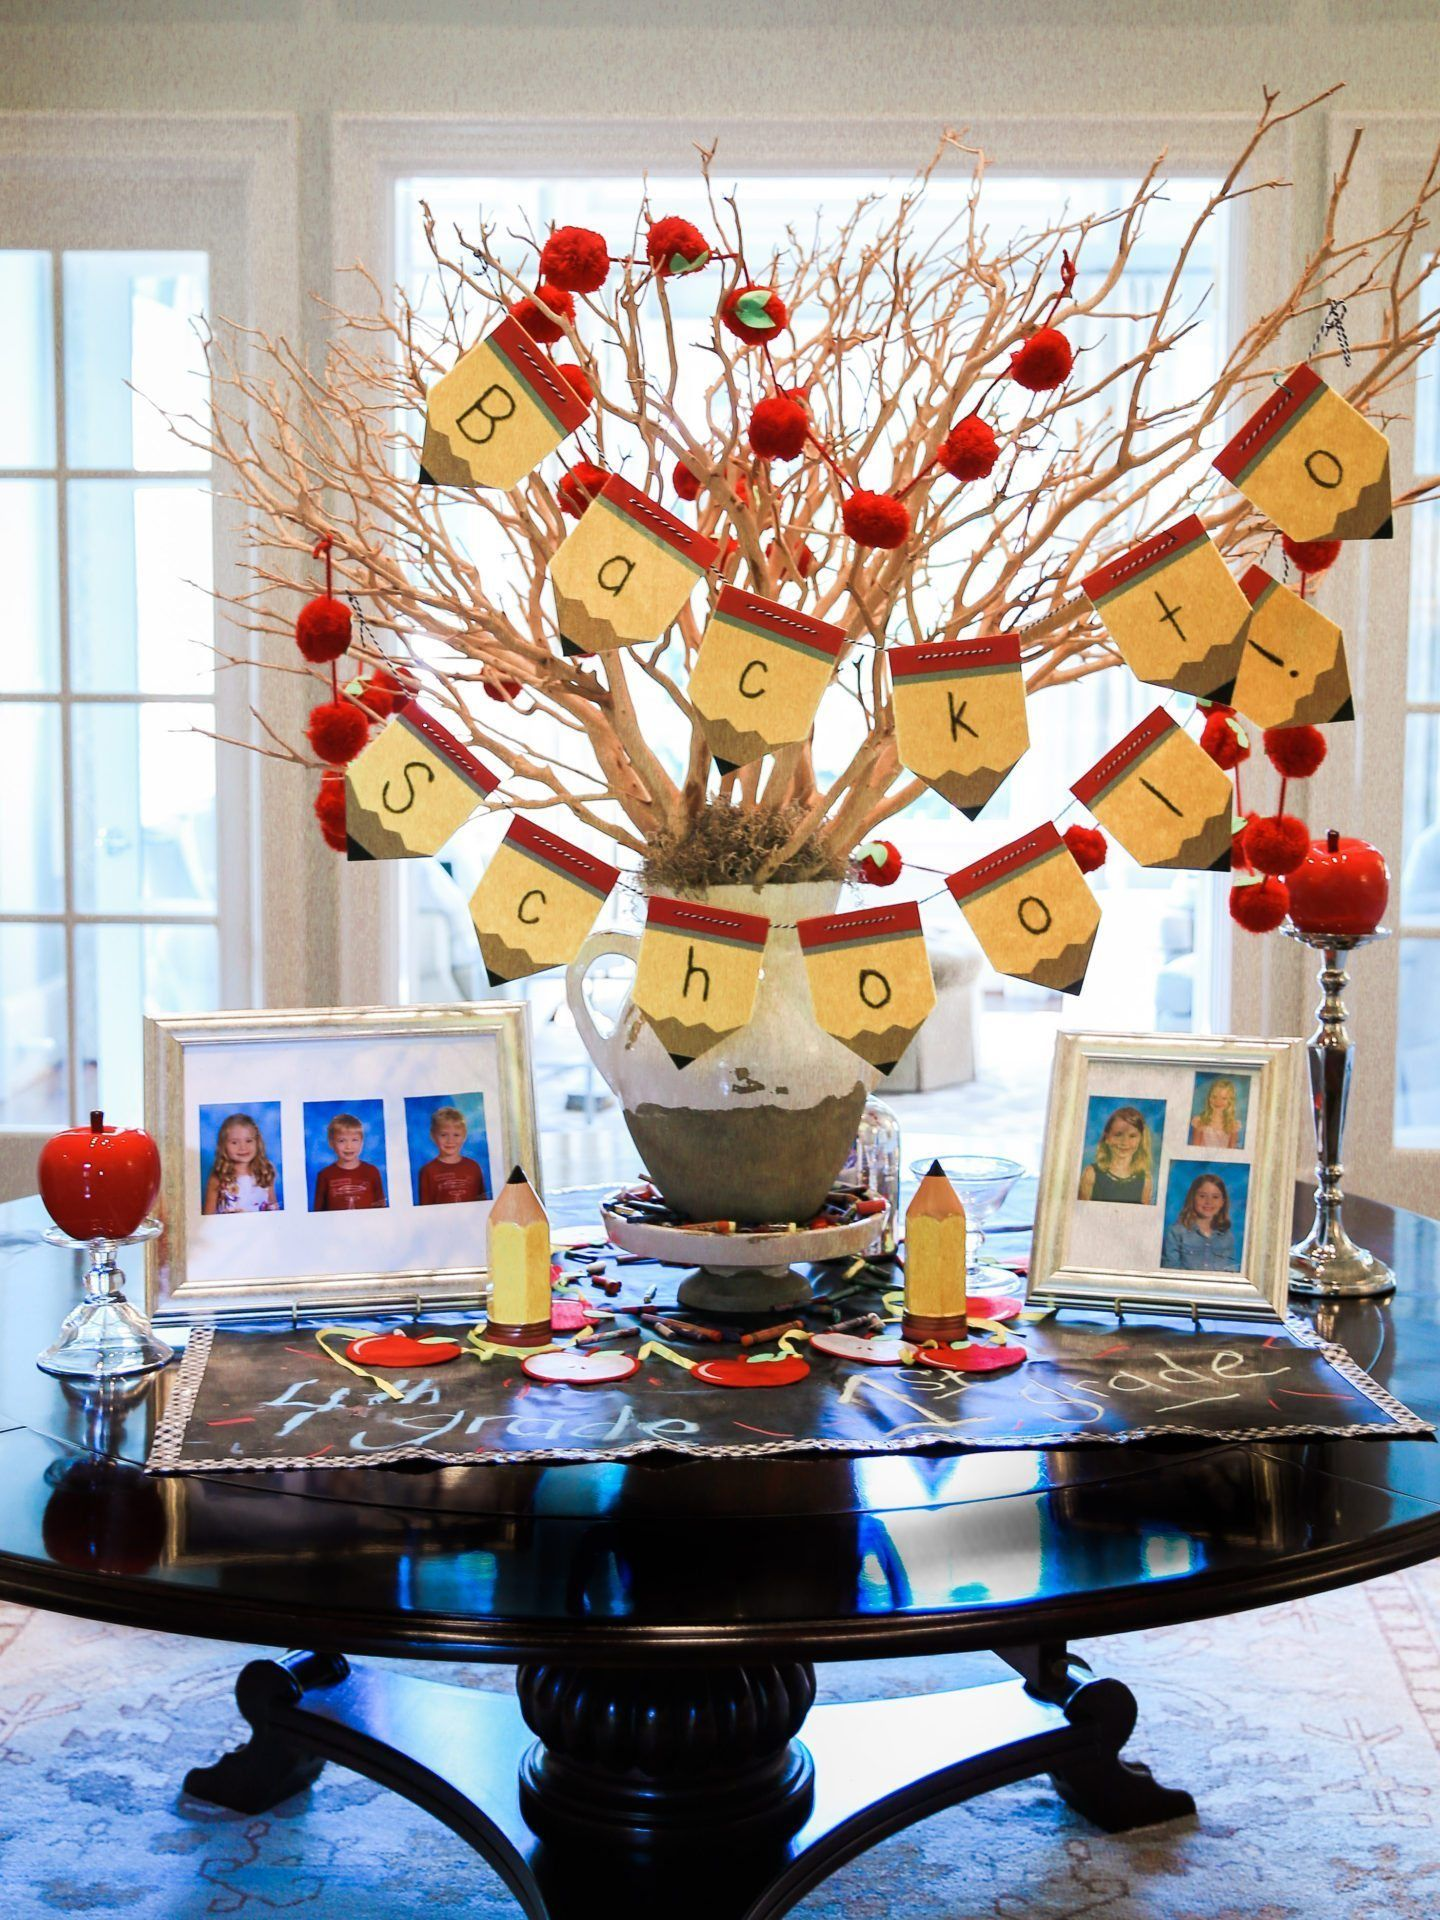 How to use Classroom Theme Decor to Celebrate | School centerpieces, Classroom themes, School ...